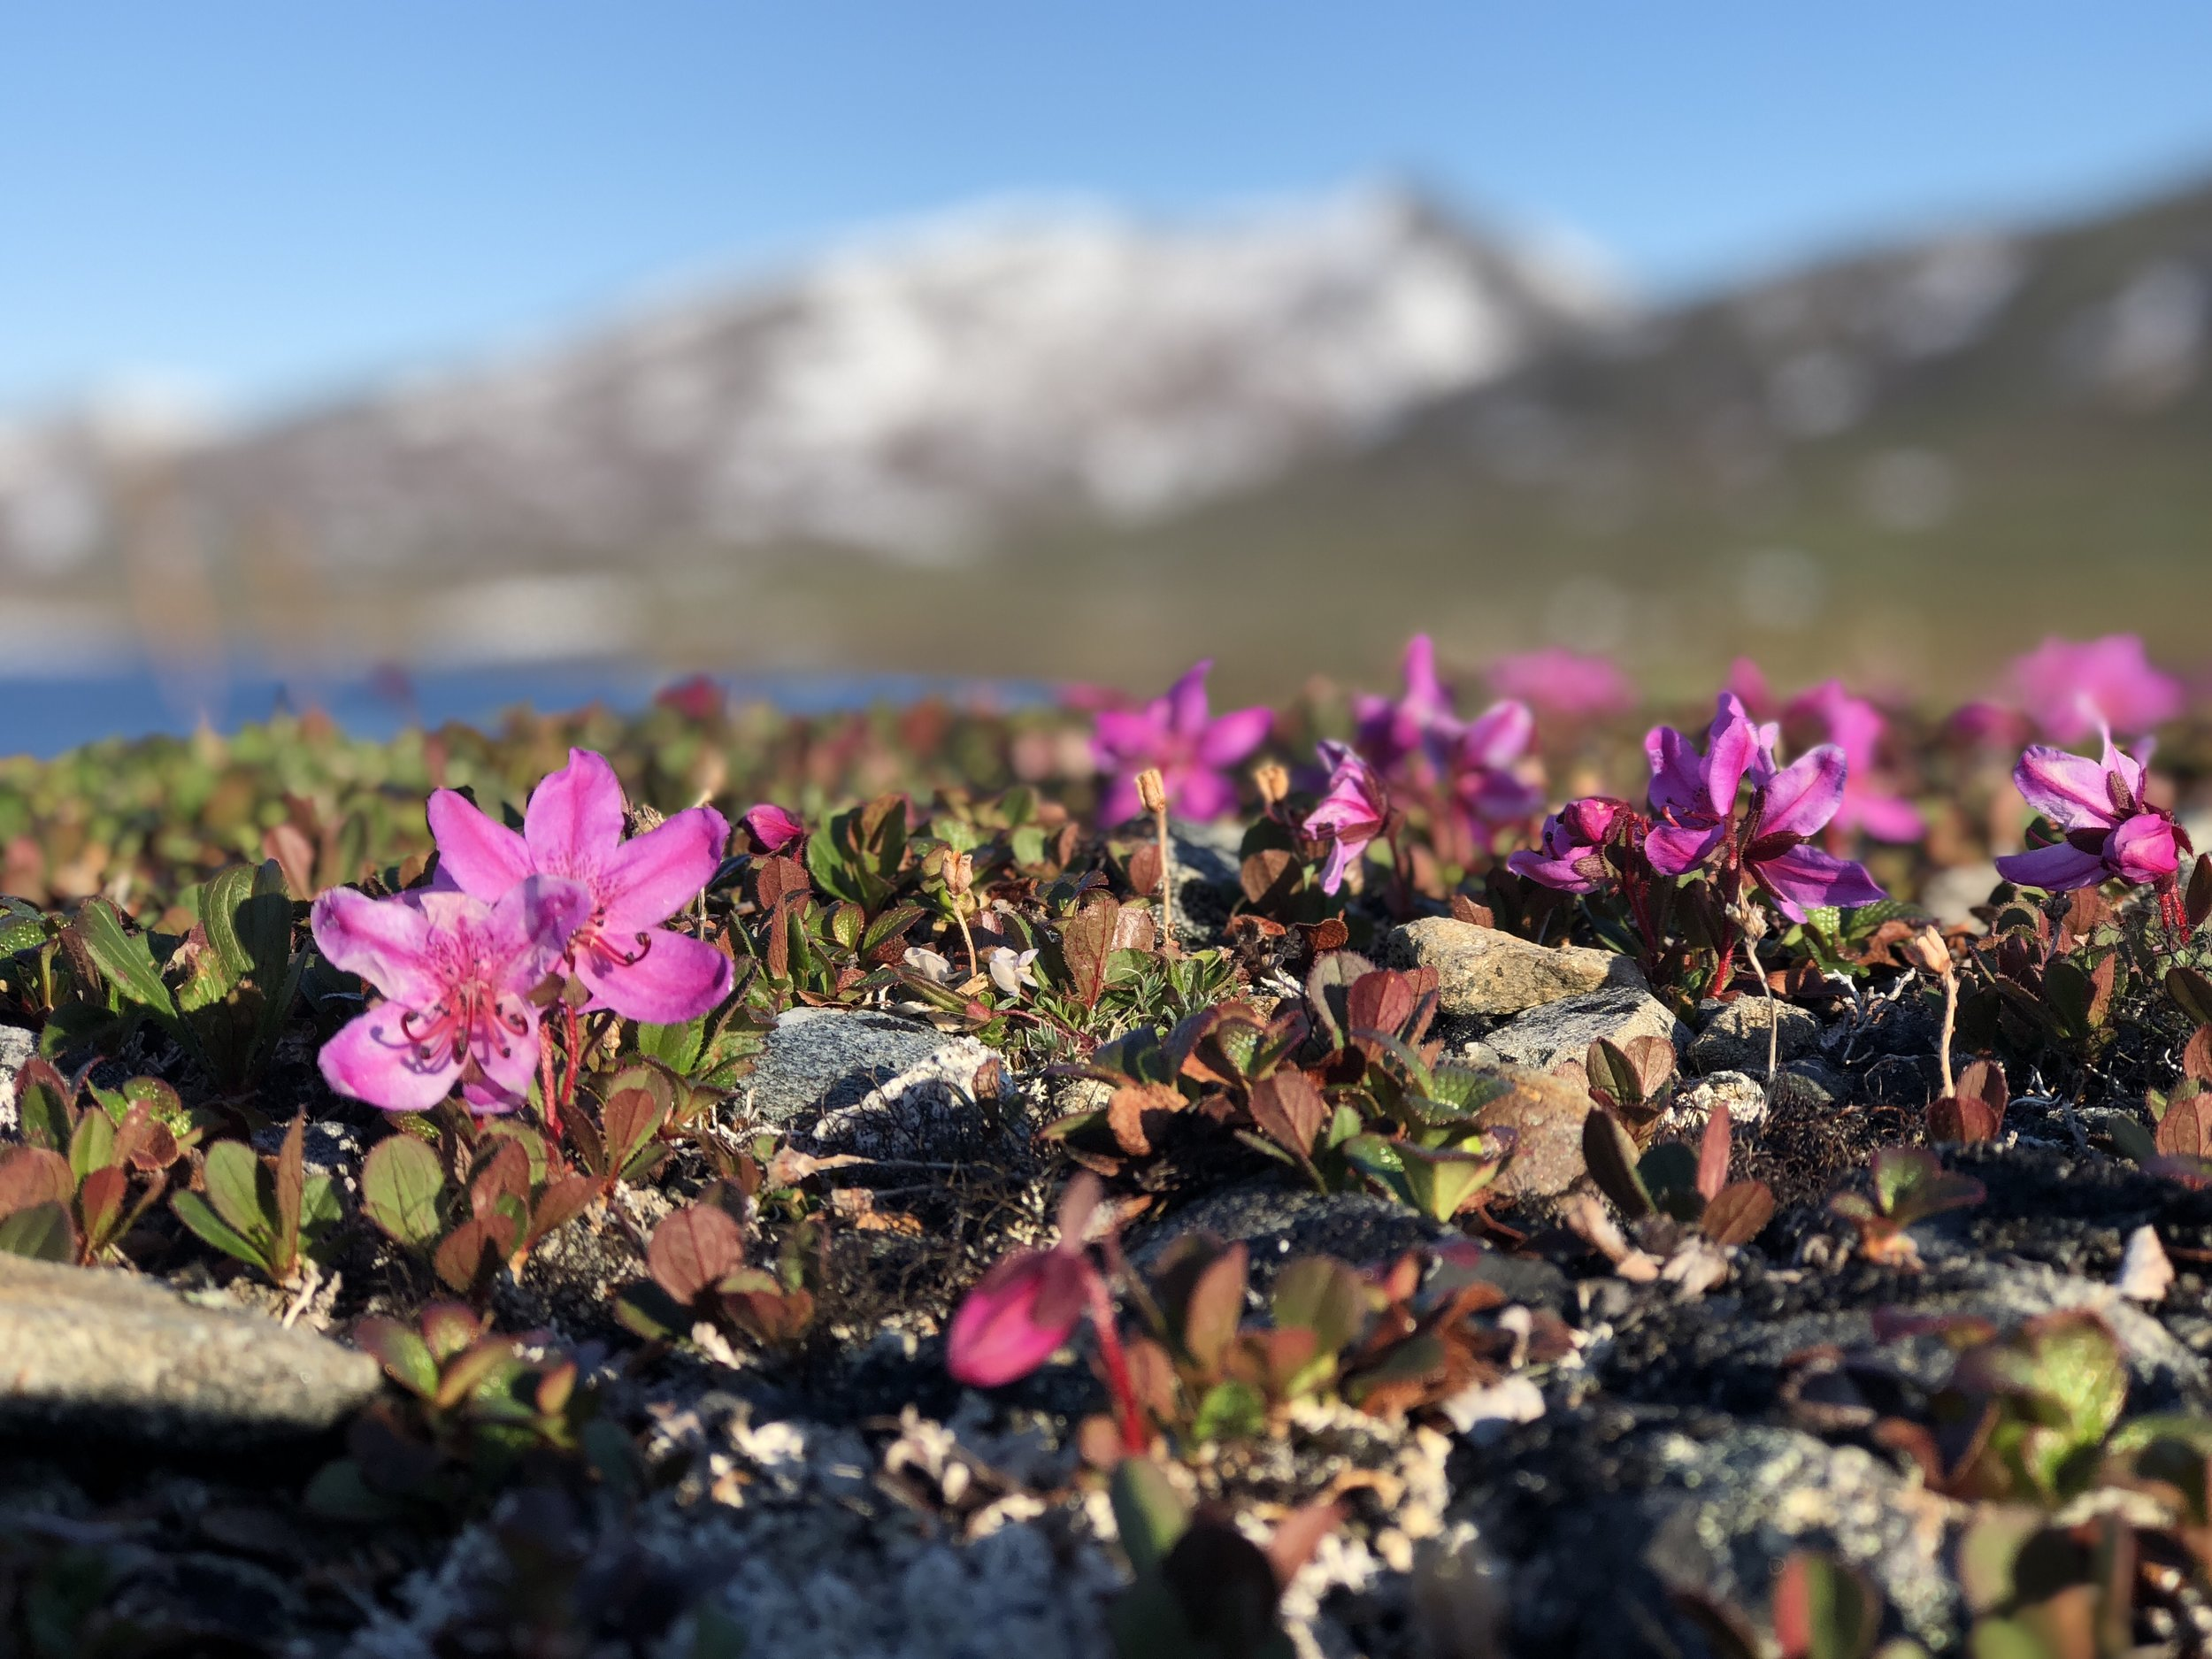 Kamchatka Rhododendron is a dwarf tundra flower carpeting the valley hillsides